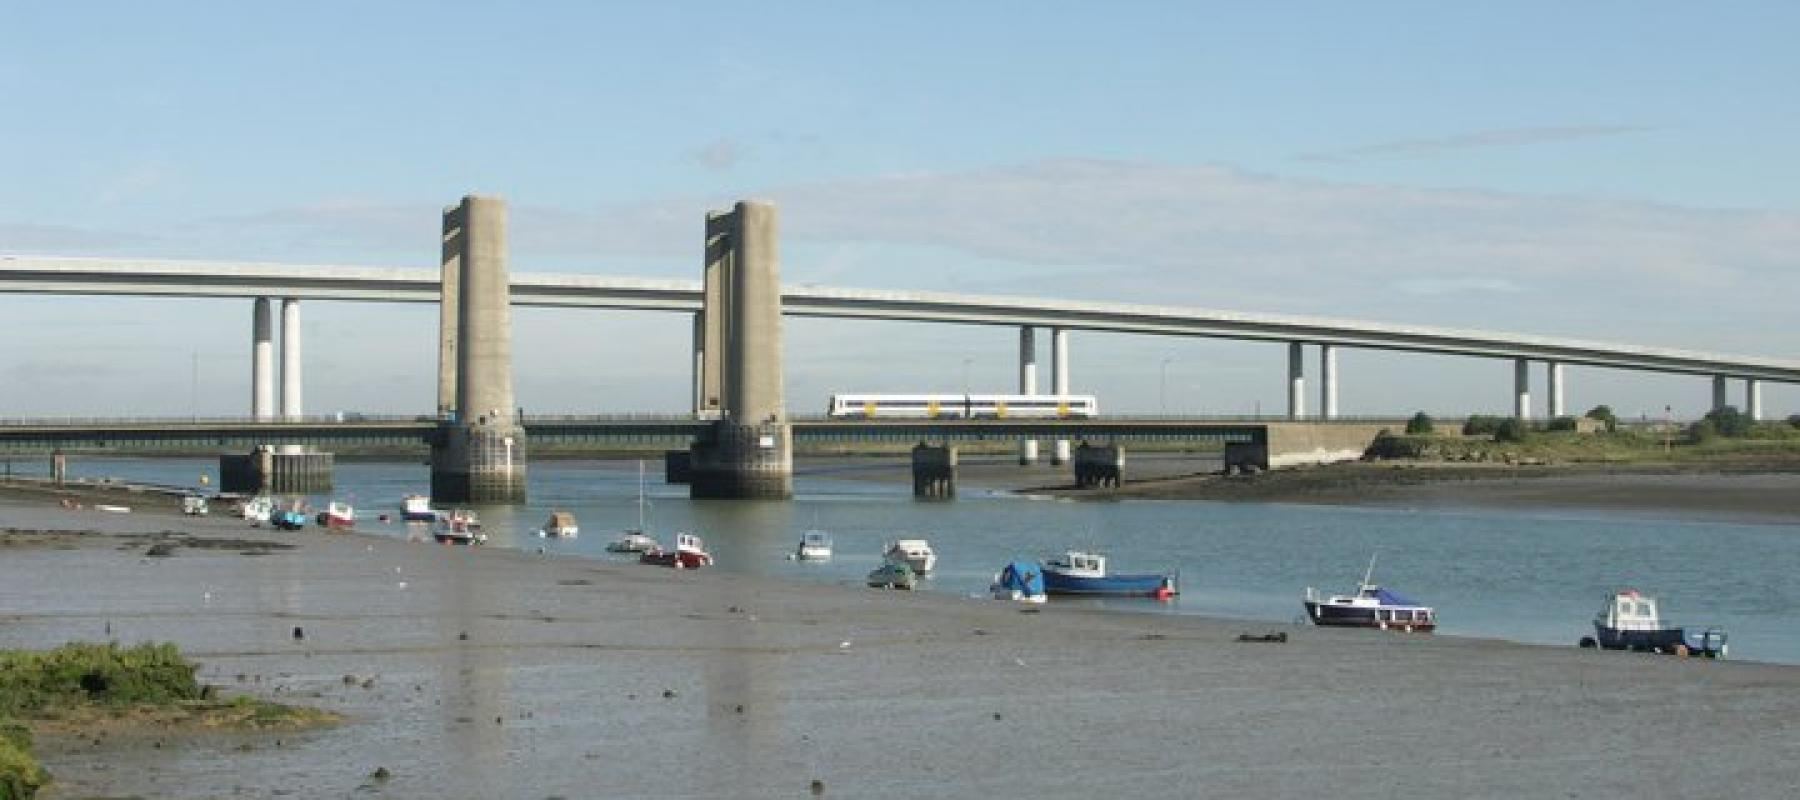 Train travelling along the Kingsferry Bridge and Sheppey Crossing along the Swale Rail line. South East UK.